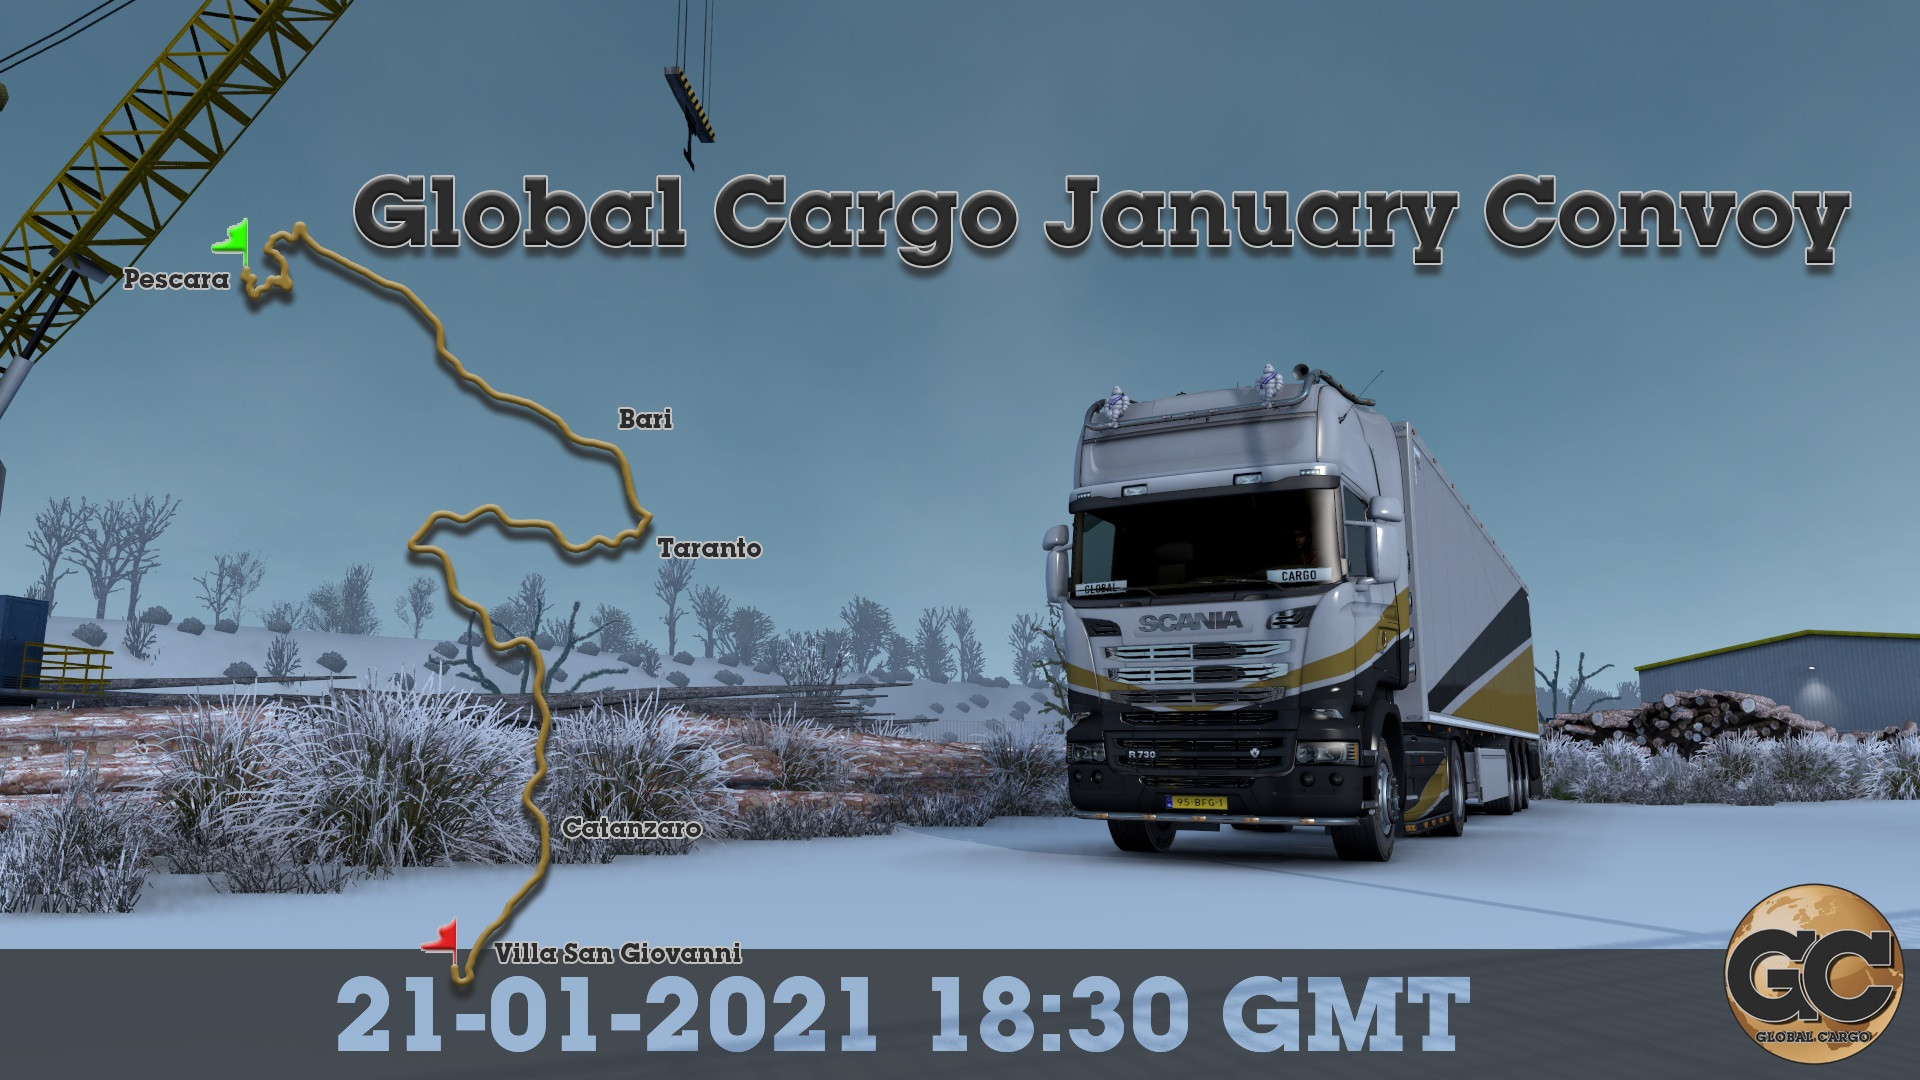 Global Cargo Public Event January